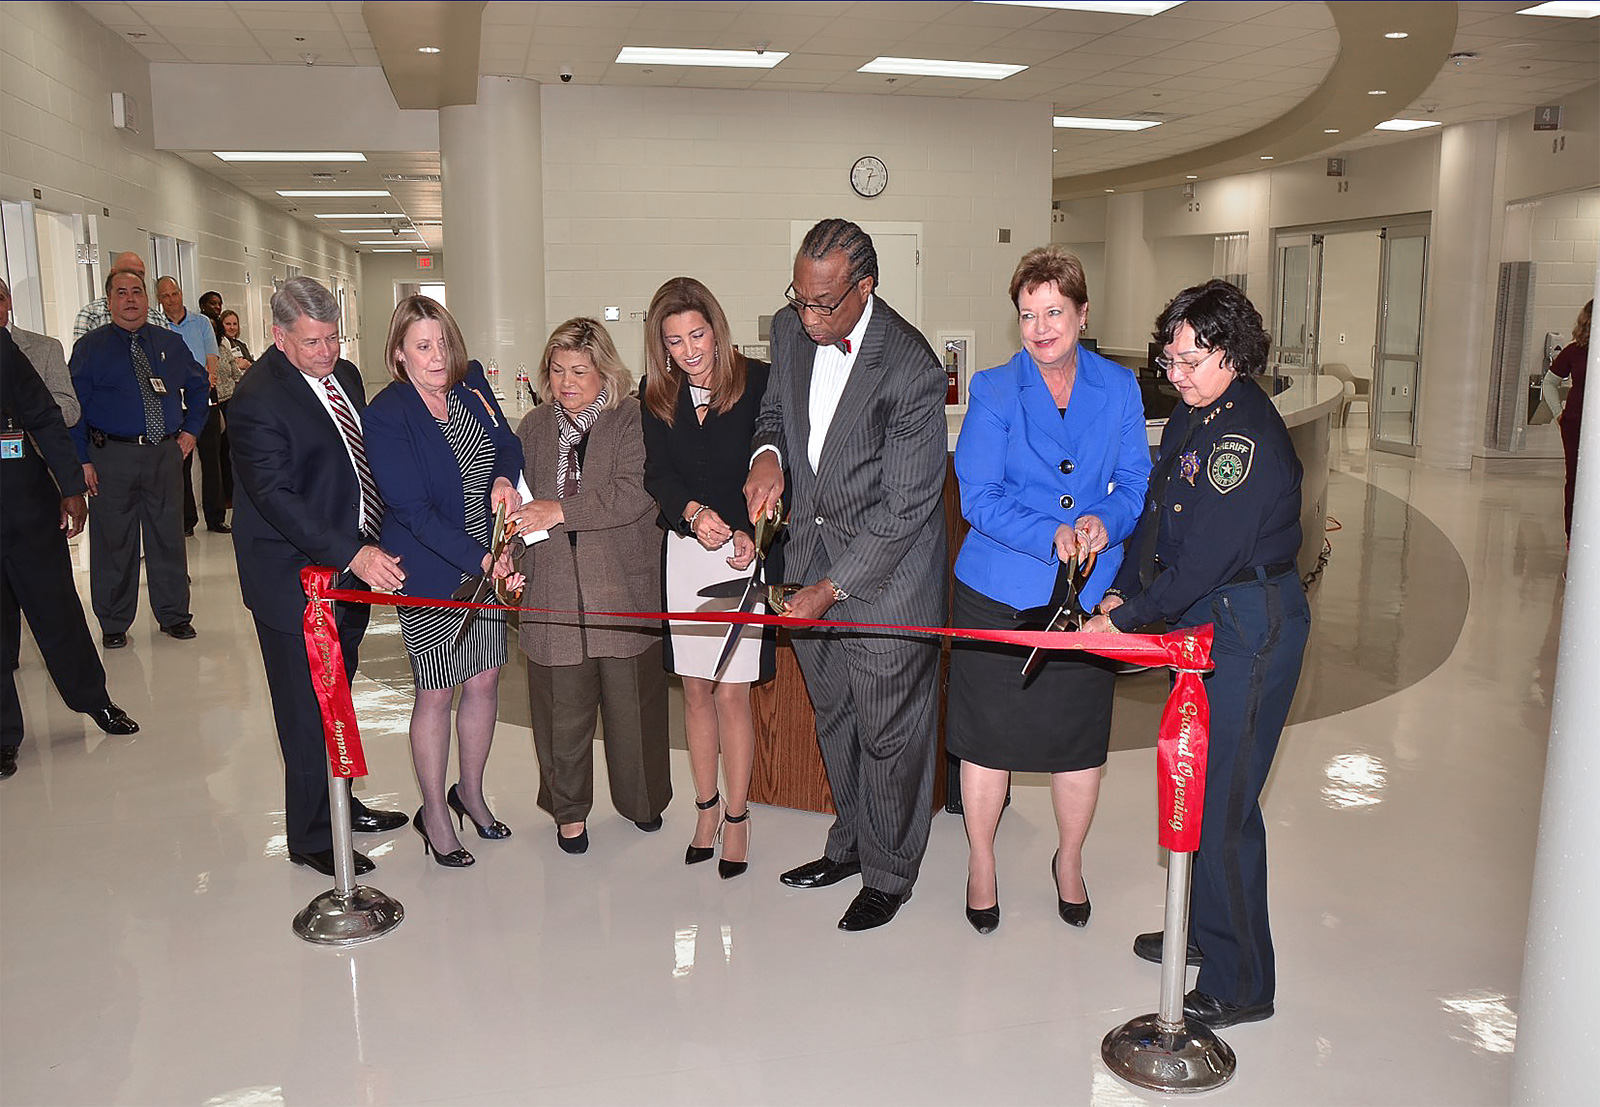 Ribbon cutting ceremony for the expansion and opening of the Dallas County Jail Medical Modification project.